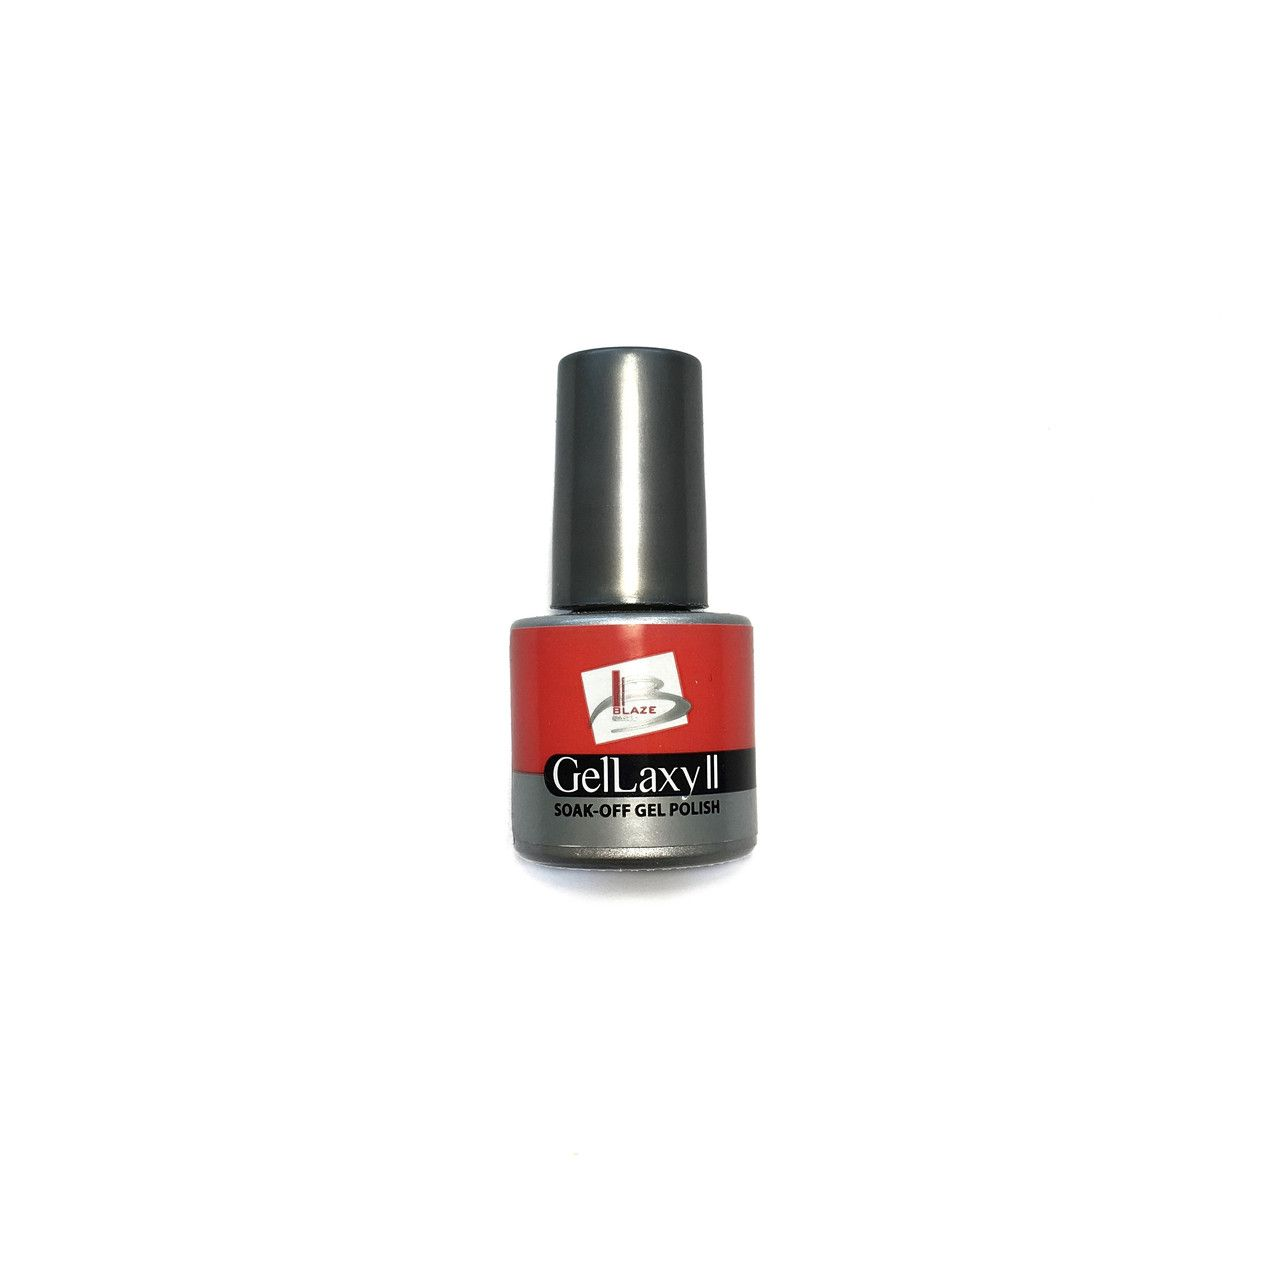 Гель-лак, BLAZE GelLaxy II Gel Polish, 582036 Idol